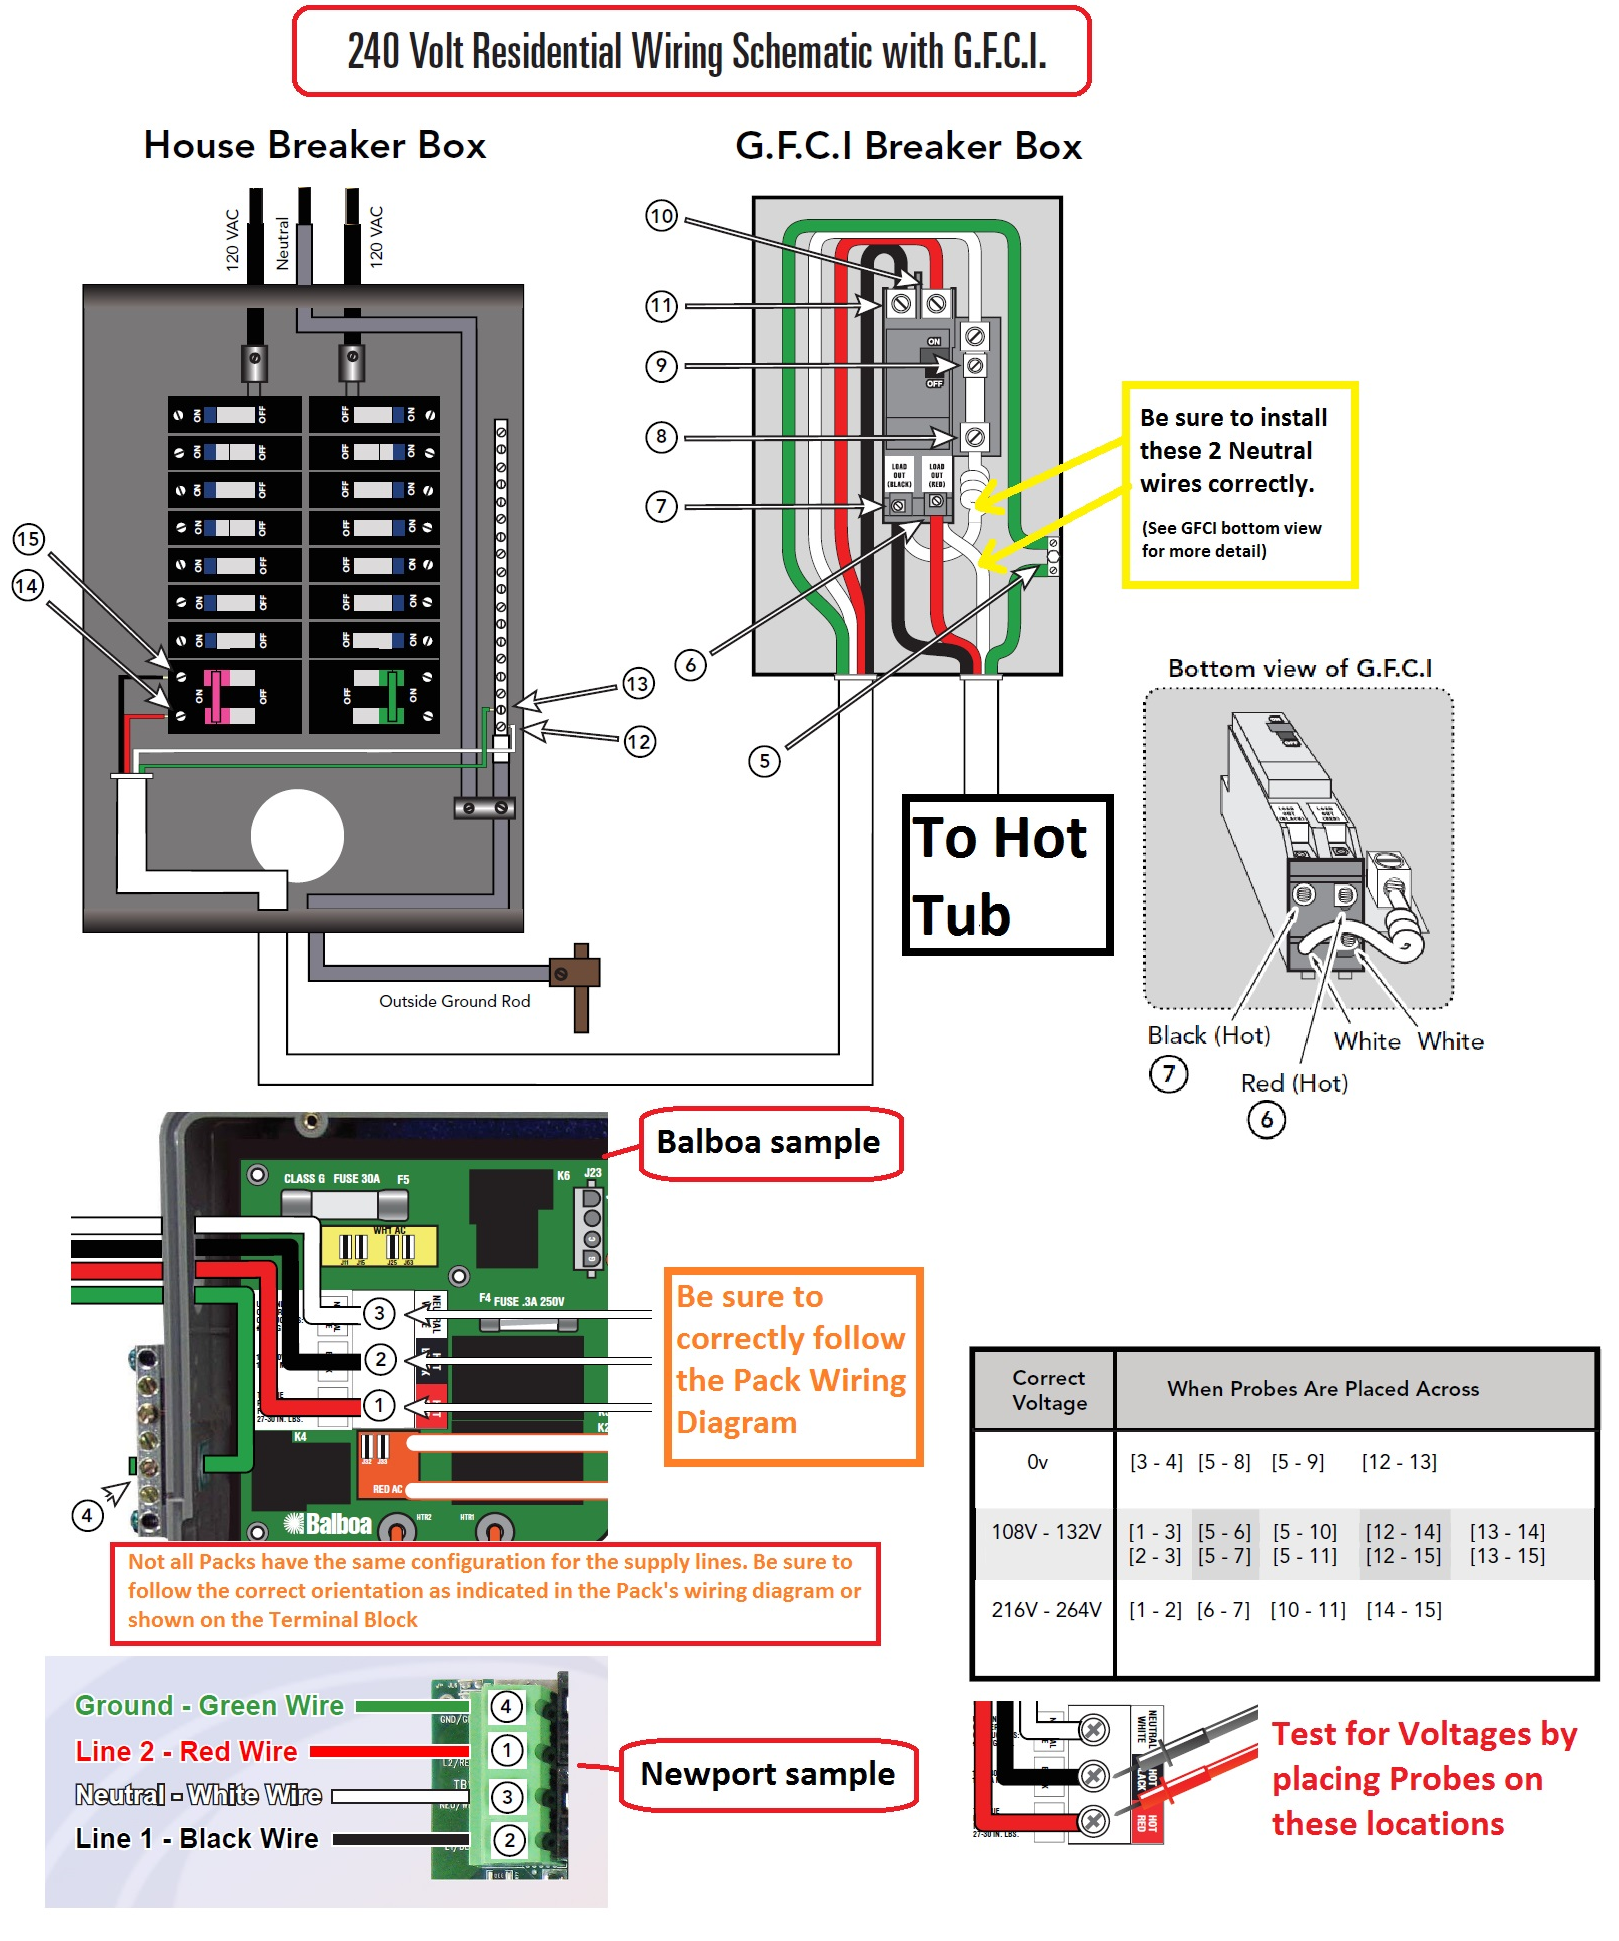 240v Wiring System Real Diagram Electric Water Heater Diagrams Electrical Installation Correct For A Supply 120v Switch Thermostat